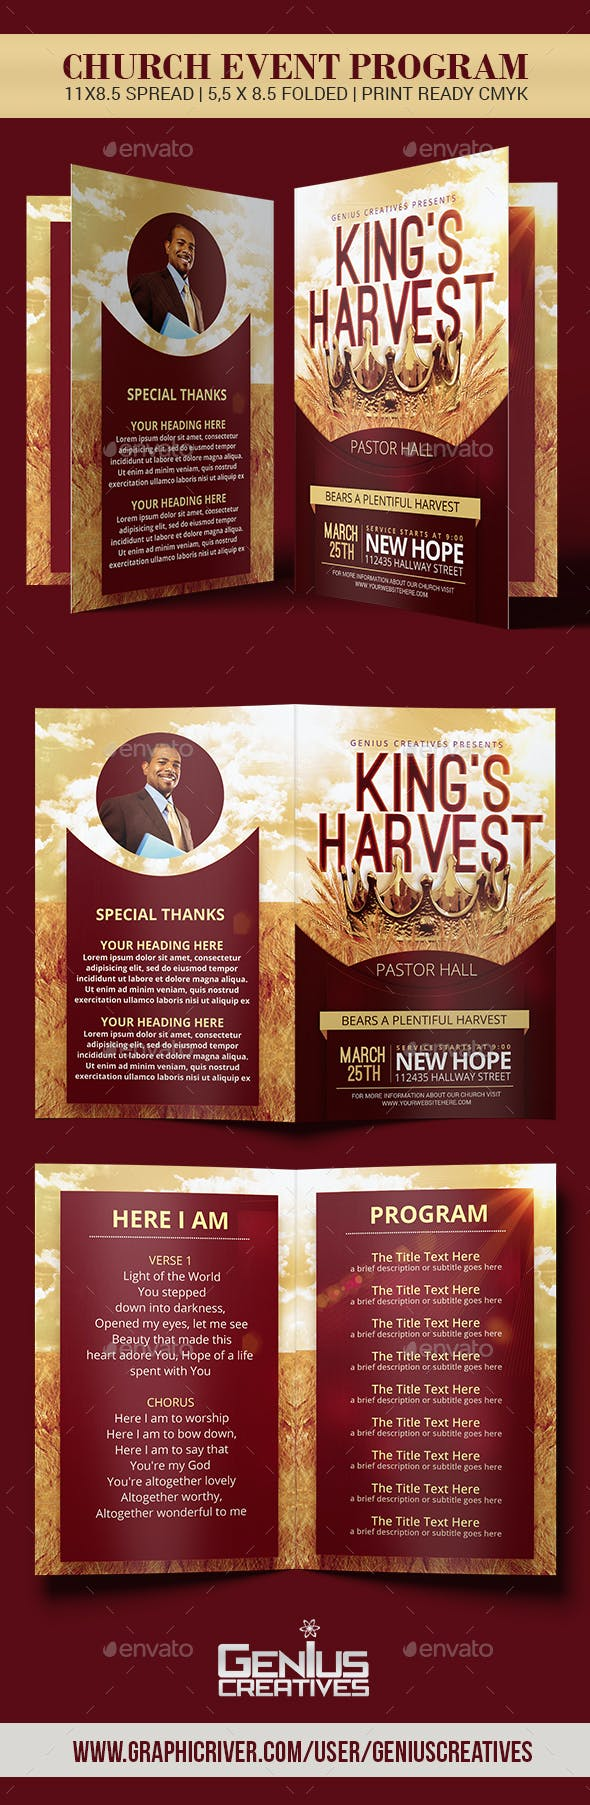 king s harvest church program template by geniuscreatives graphicriver